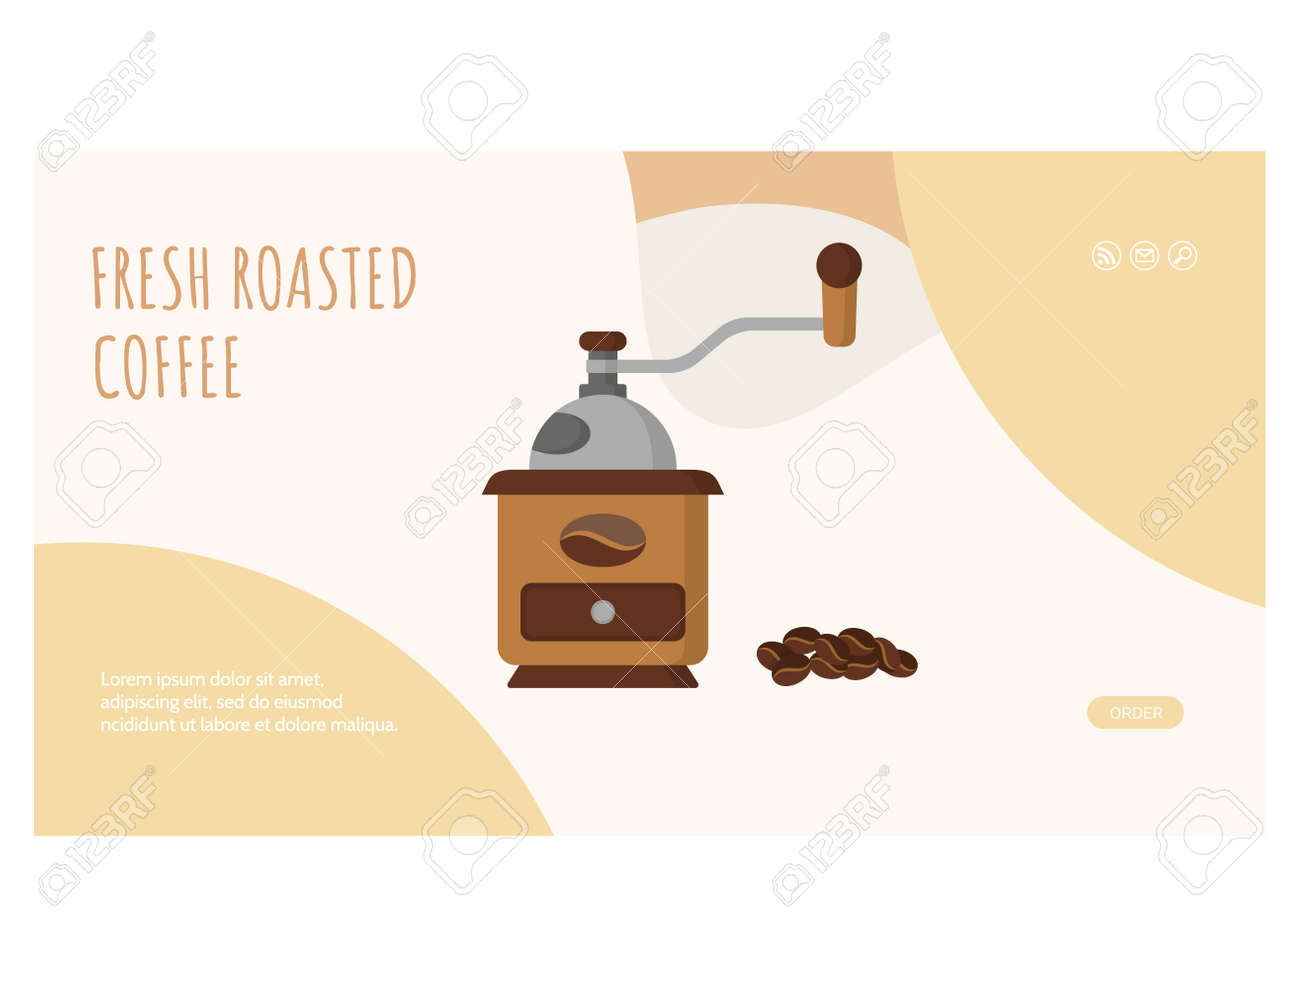 Fresh roasted coffee web page flat design template - 168346712